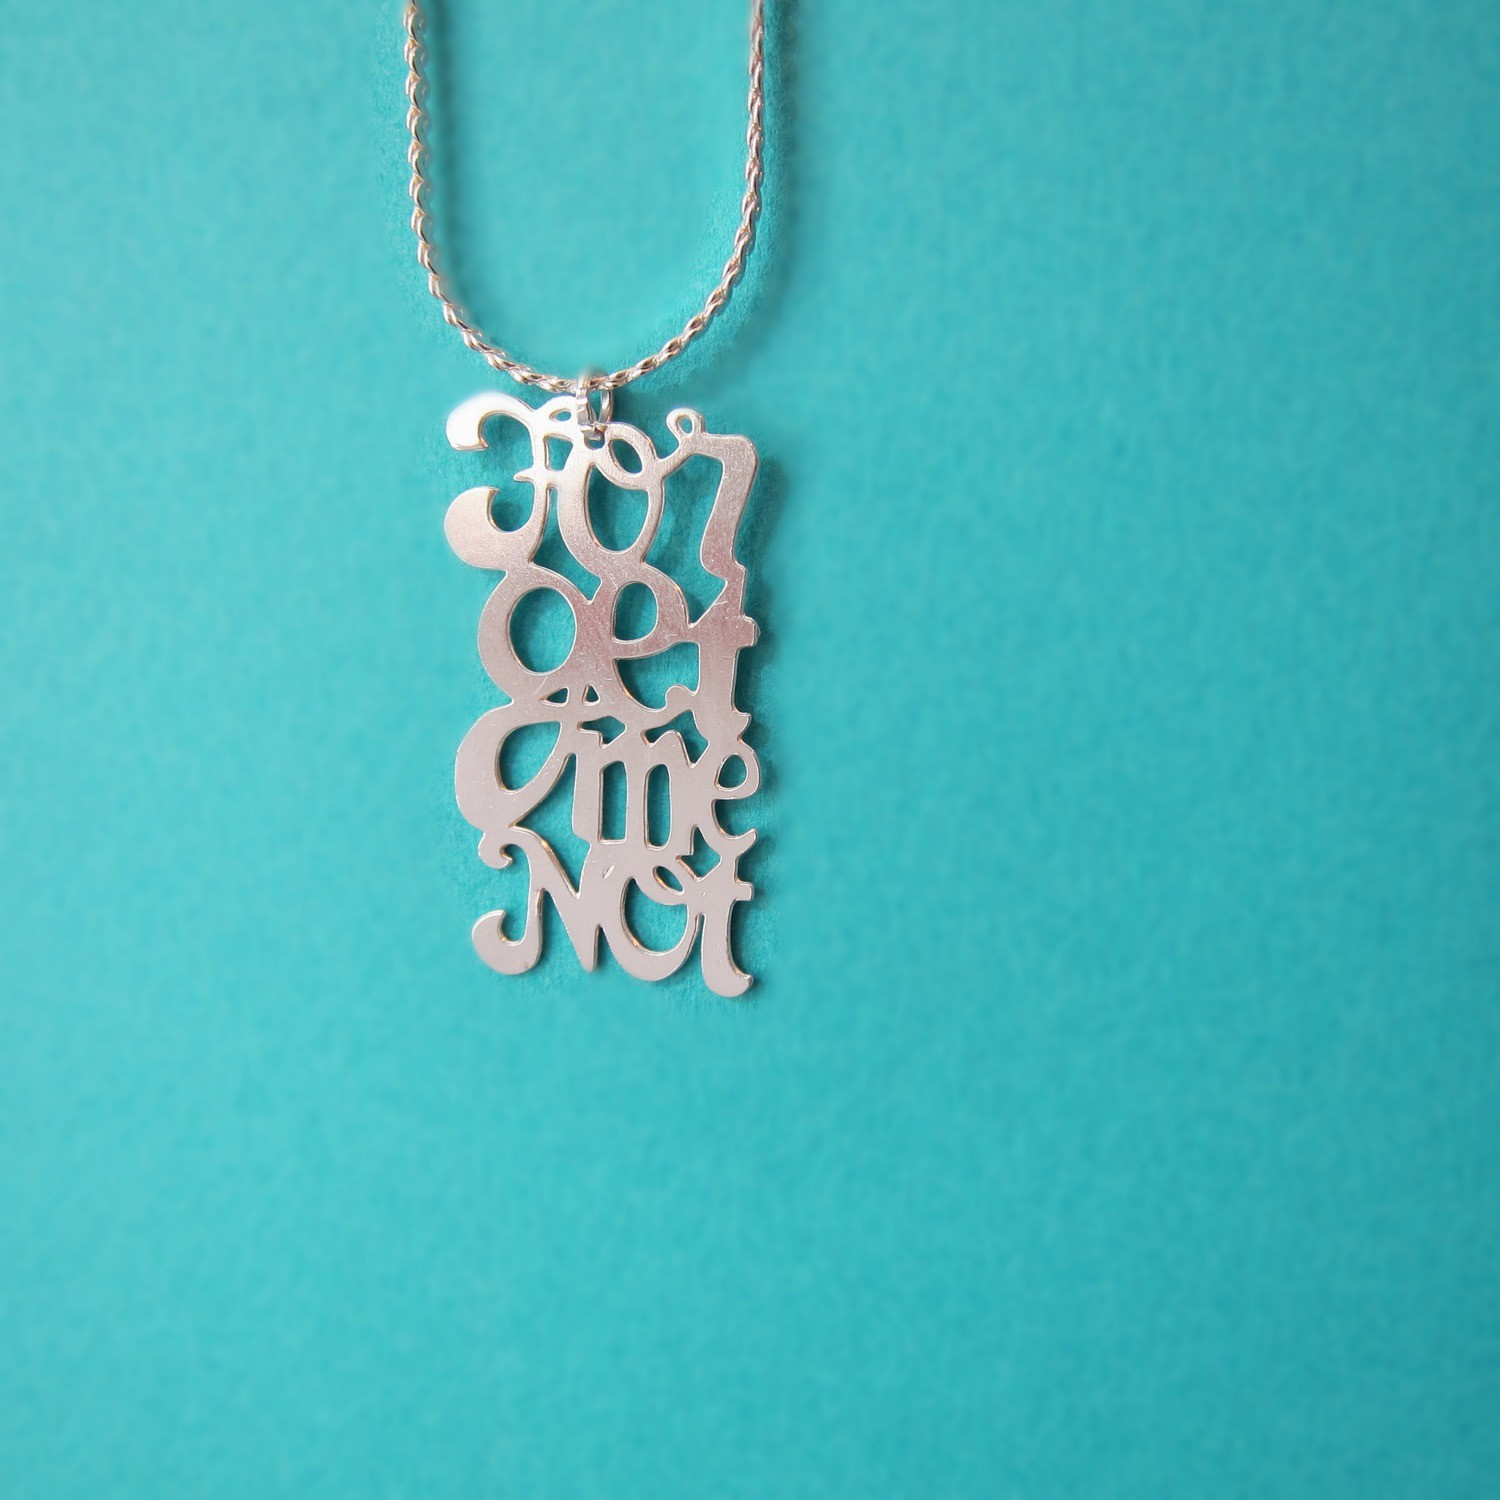 Collier Pendentif Forget Me Not - Argent